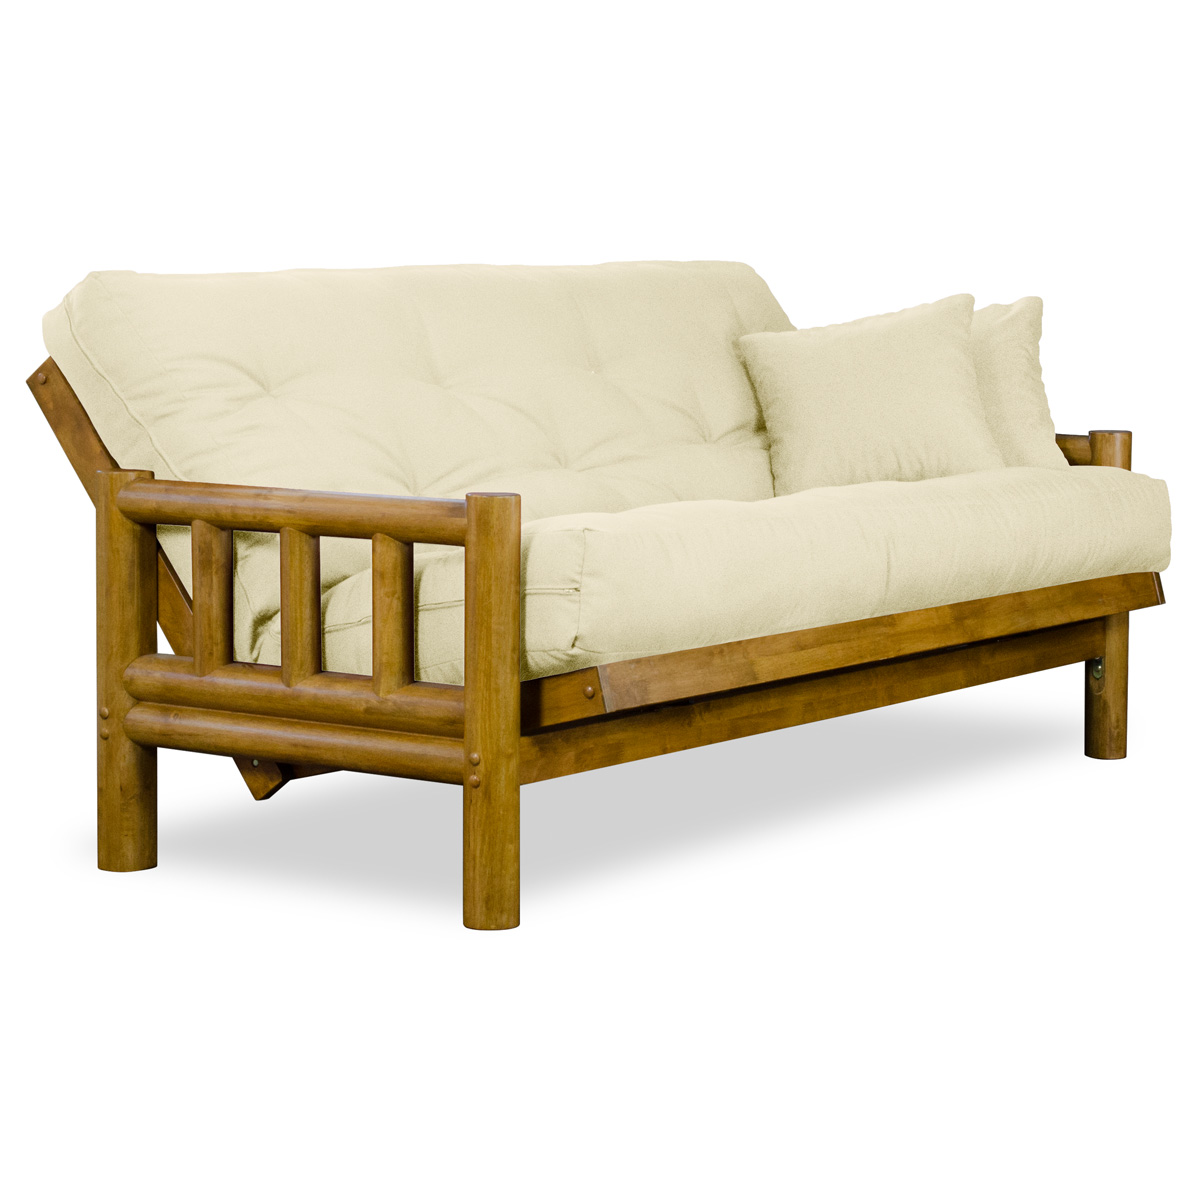 Tahoe Log Futon Frame And Mattress Set Heritage Finish Nf Tlog